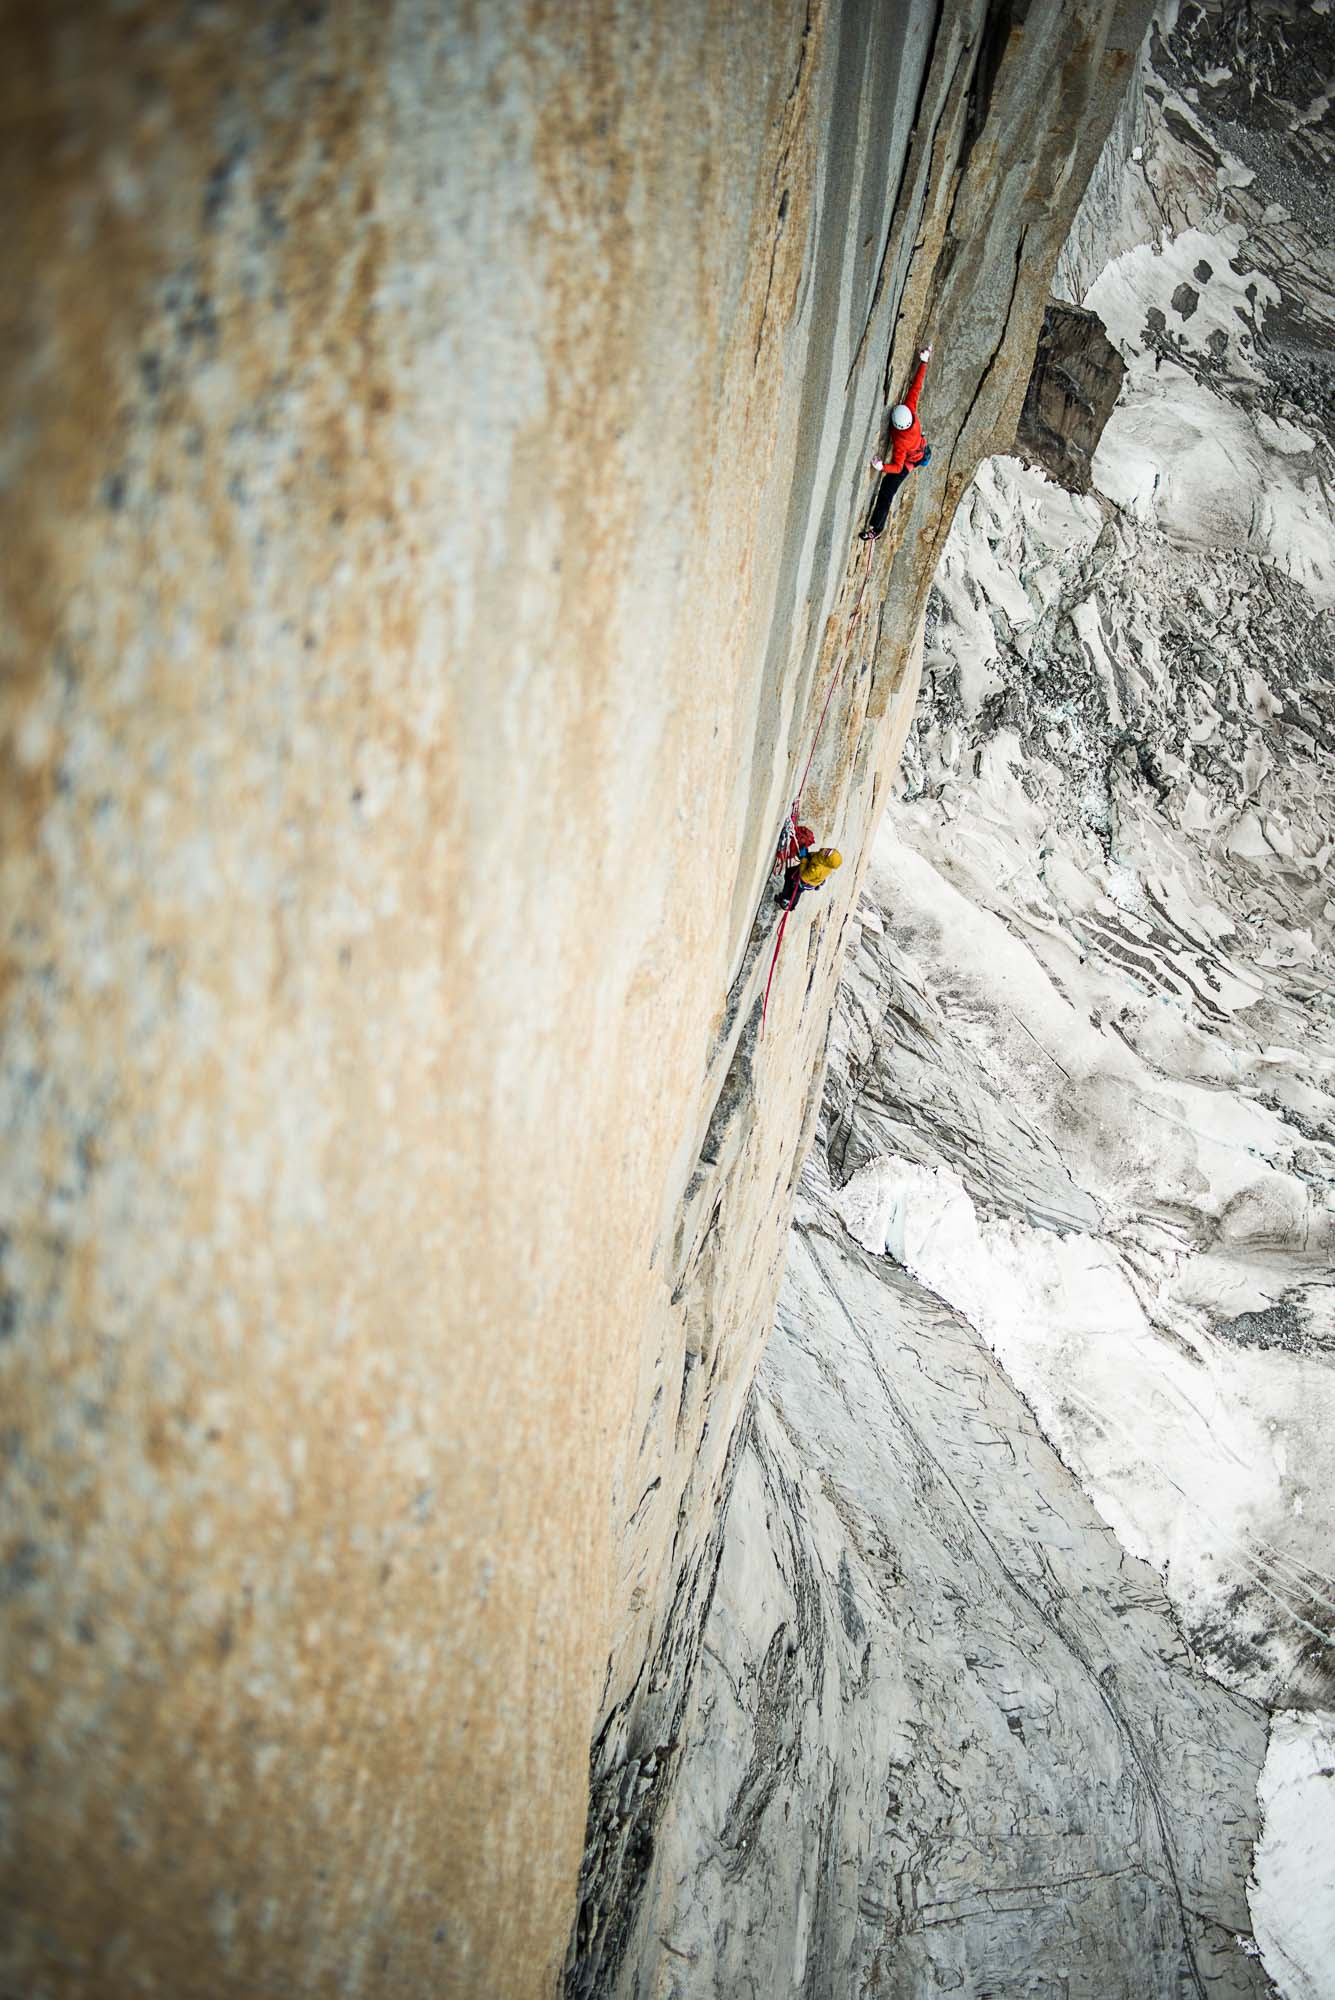 Ines Papert climbing pitch 15 of the route Riders on the storm in Torres del Paine. PHOTO: THOMAS SENF